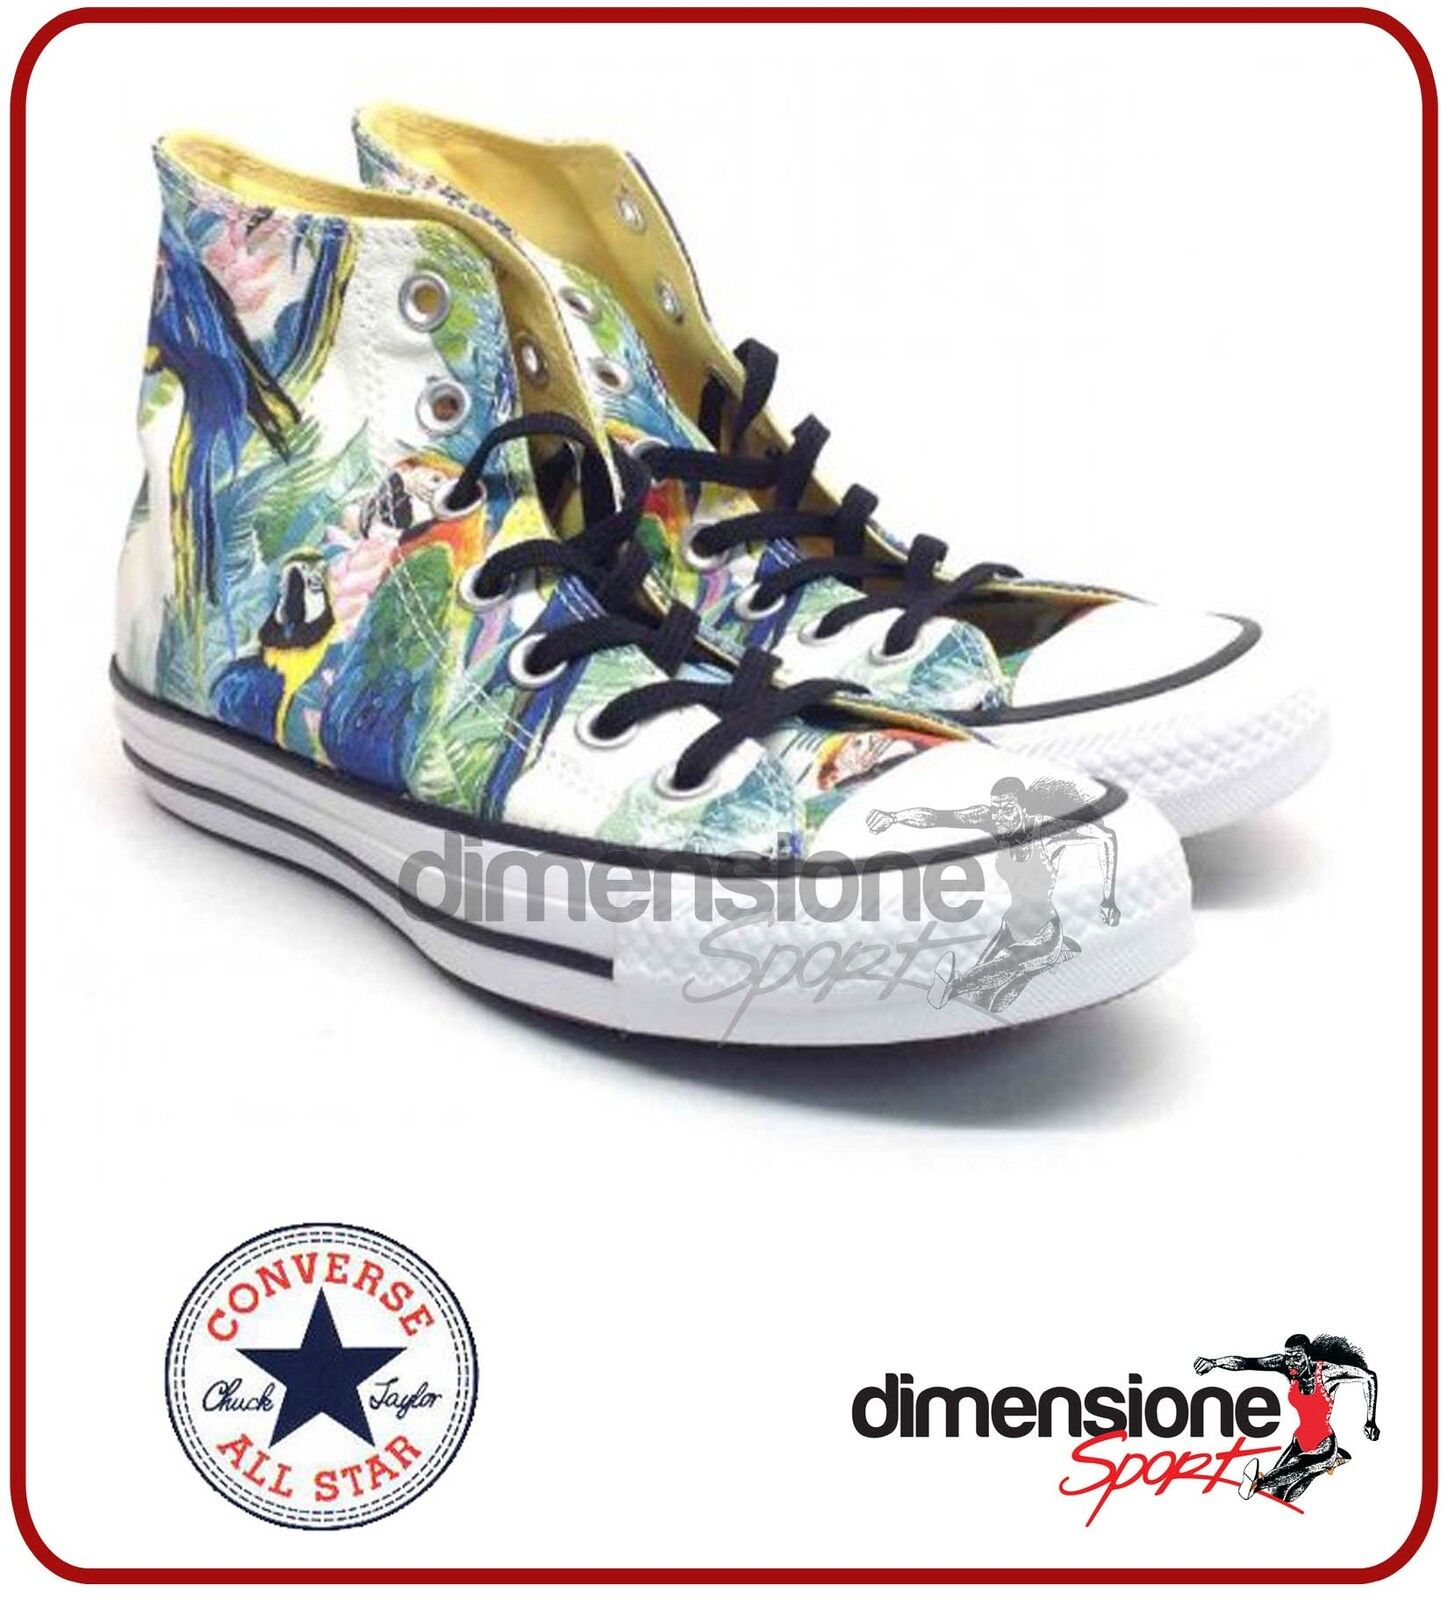 SCARPE 3,5 CONVERSE ALL STAR ALTE fantasia TG 36 US 3,5 SCARPE PRINT hi AMAZON 152707C 030501